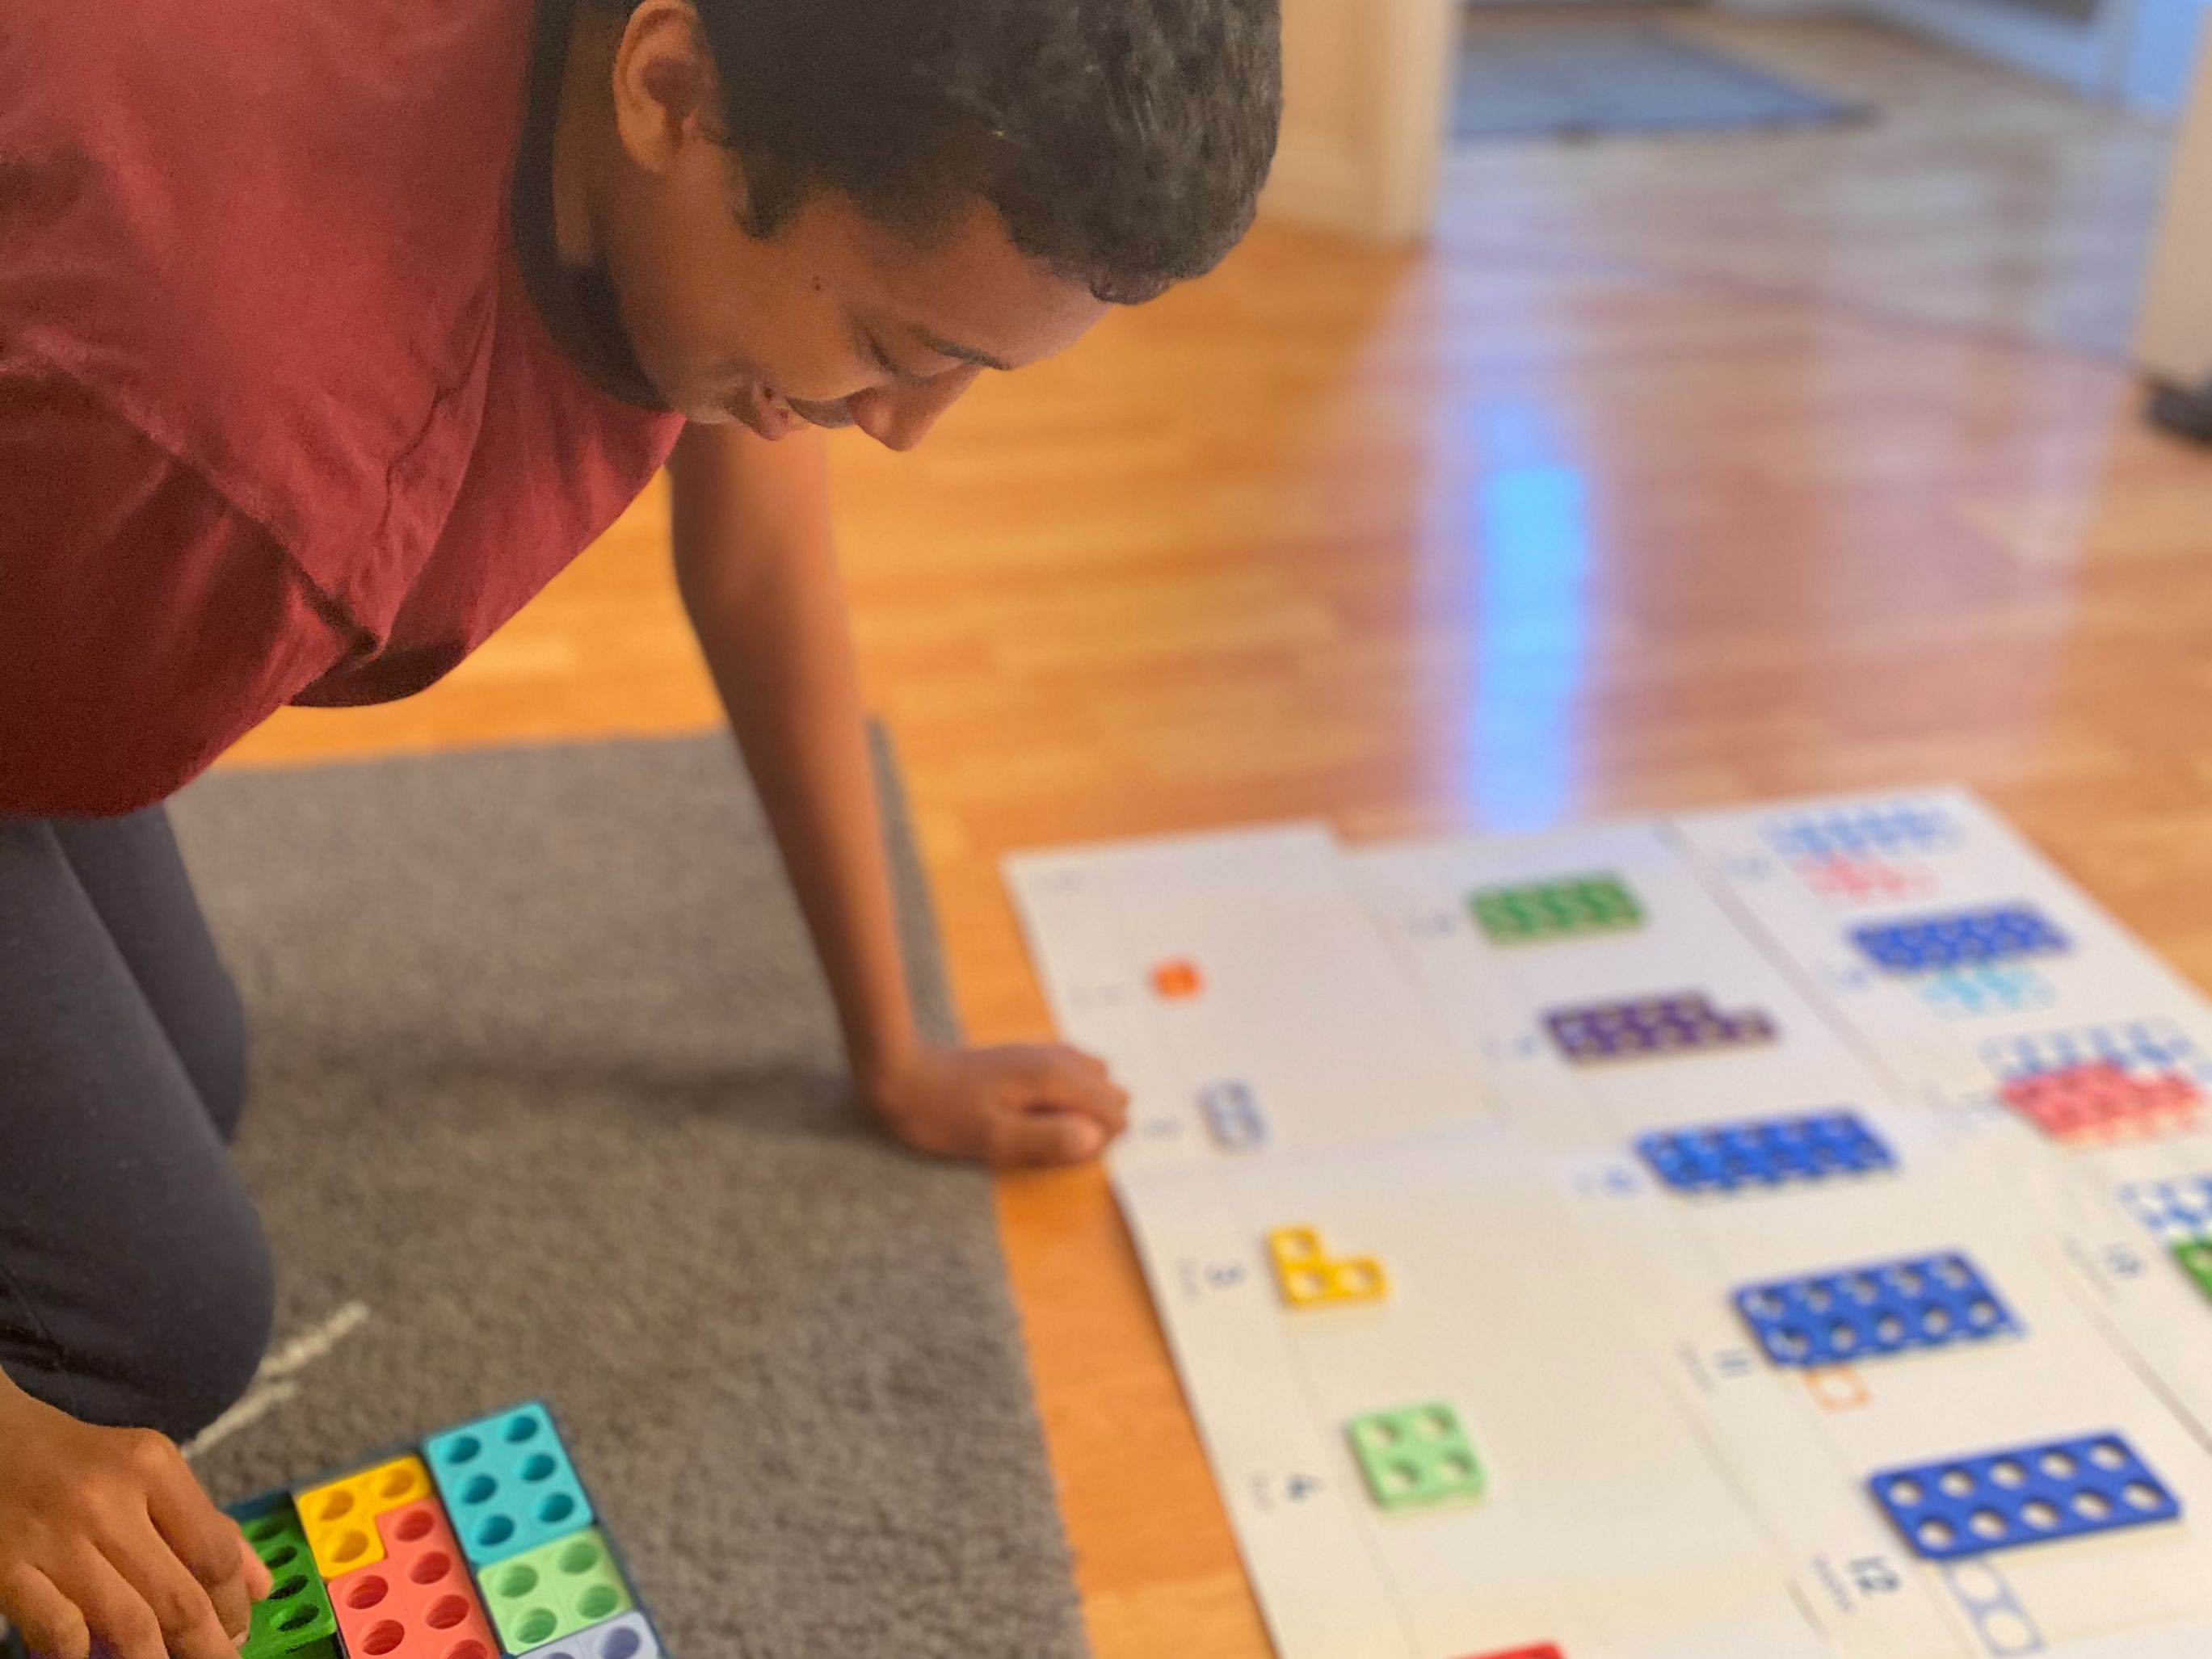 Boy on his knees using coloured blocks to do maths